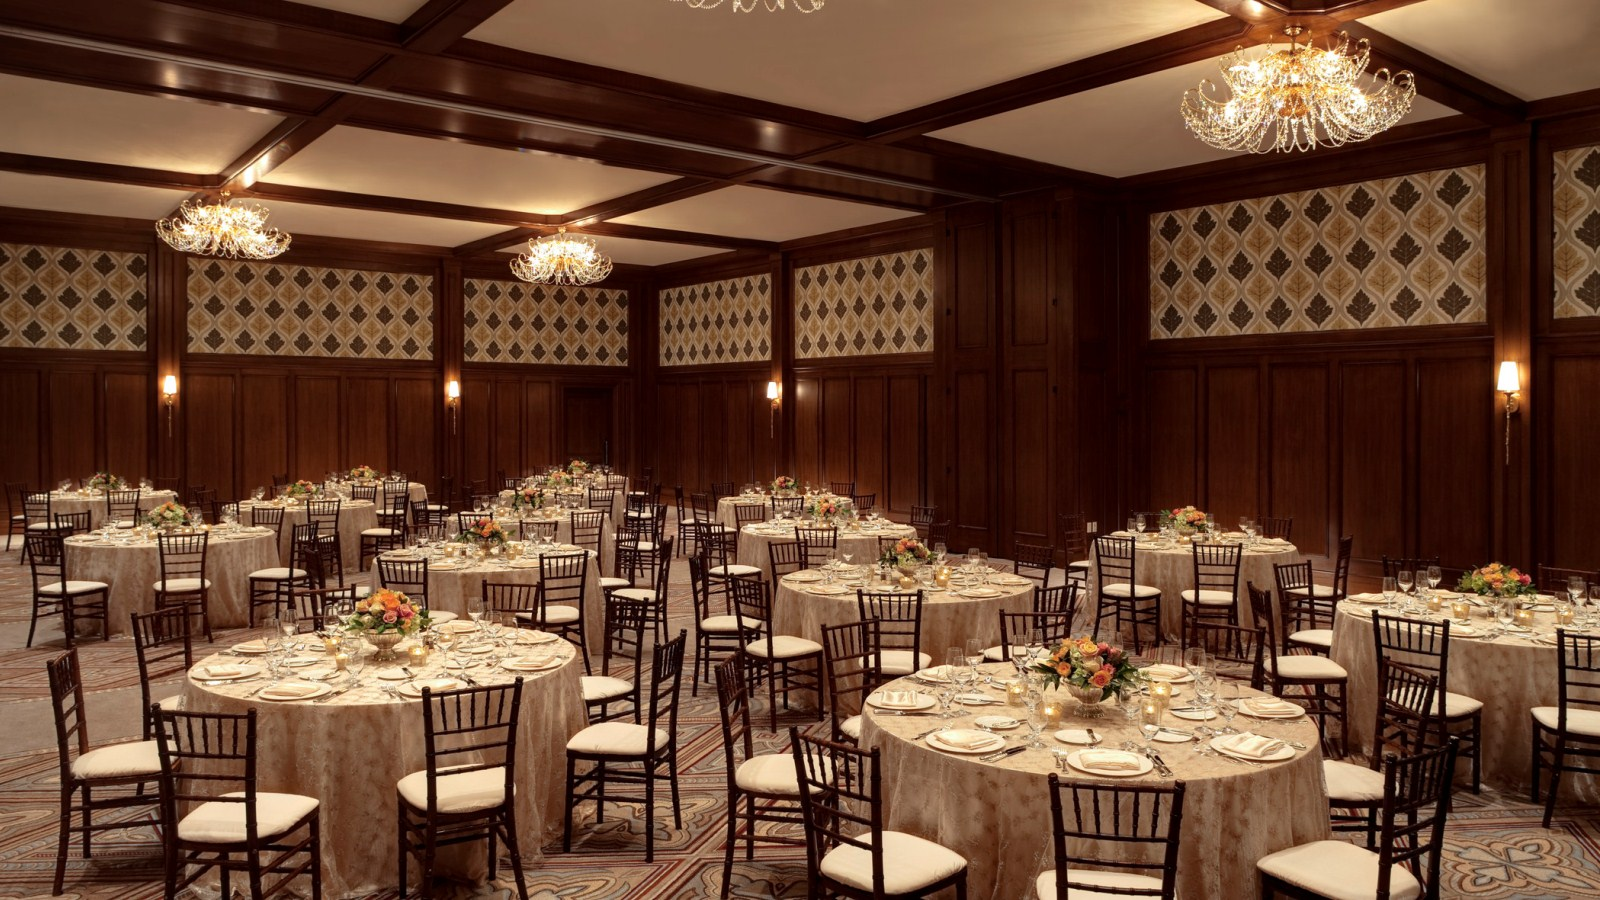 Park City Wedding Venues - Astor Ballroom